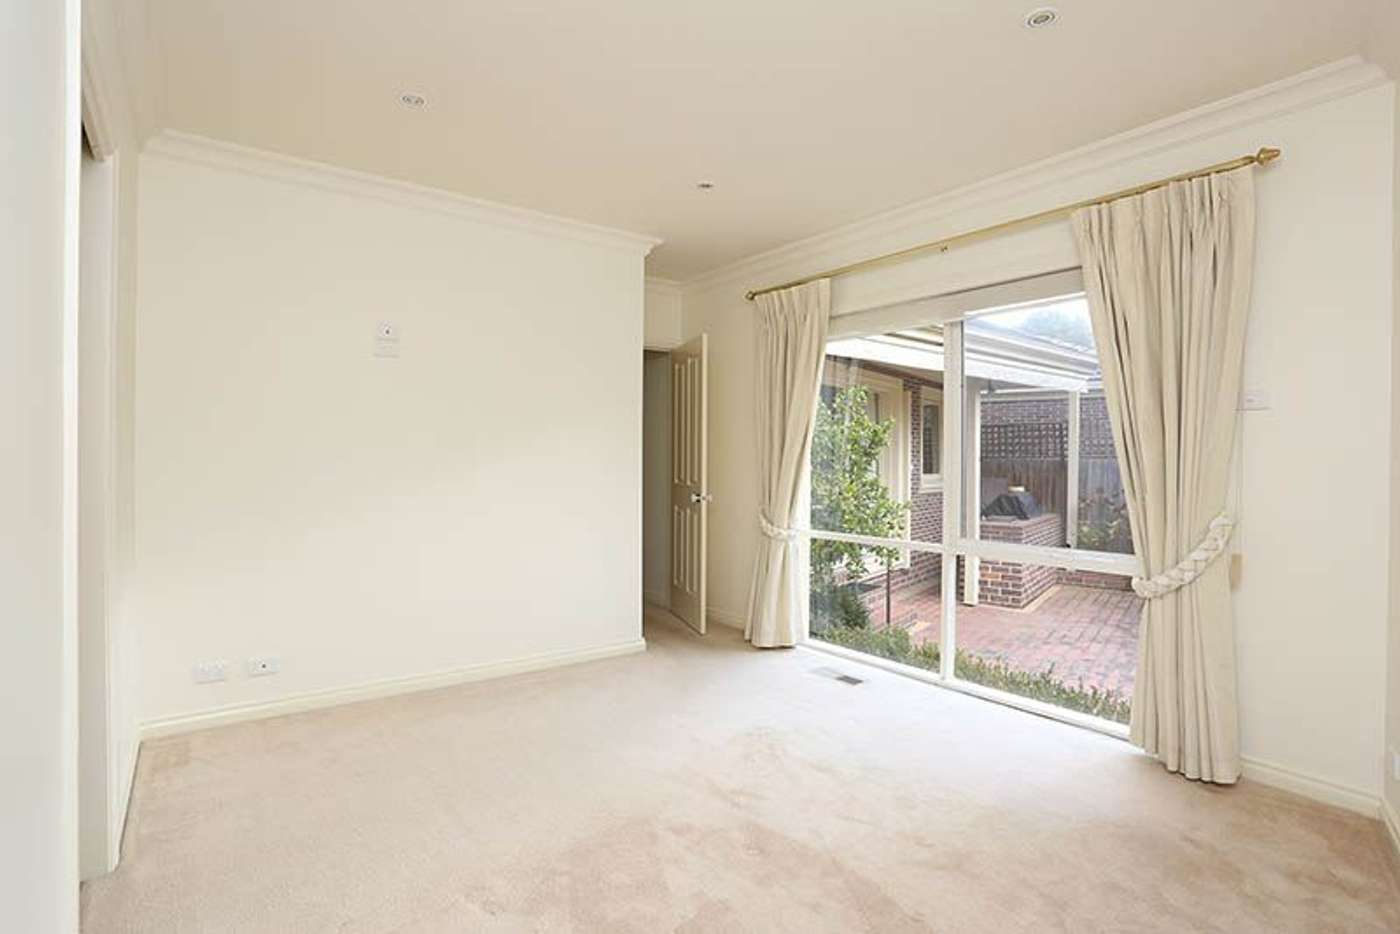 Sixth view of Homely unit listing, 2/51 Summit Crescent, Glen Waverley VIC 3150